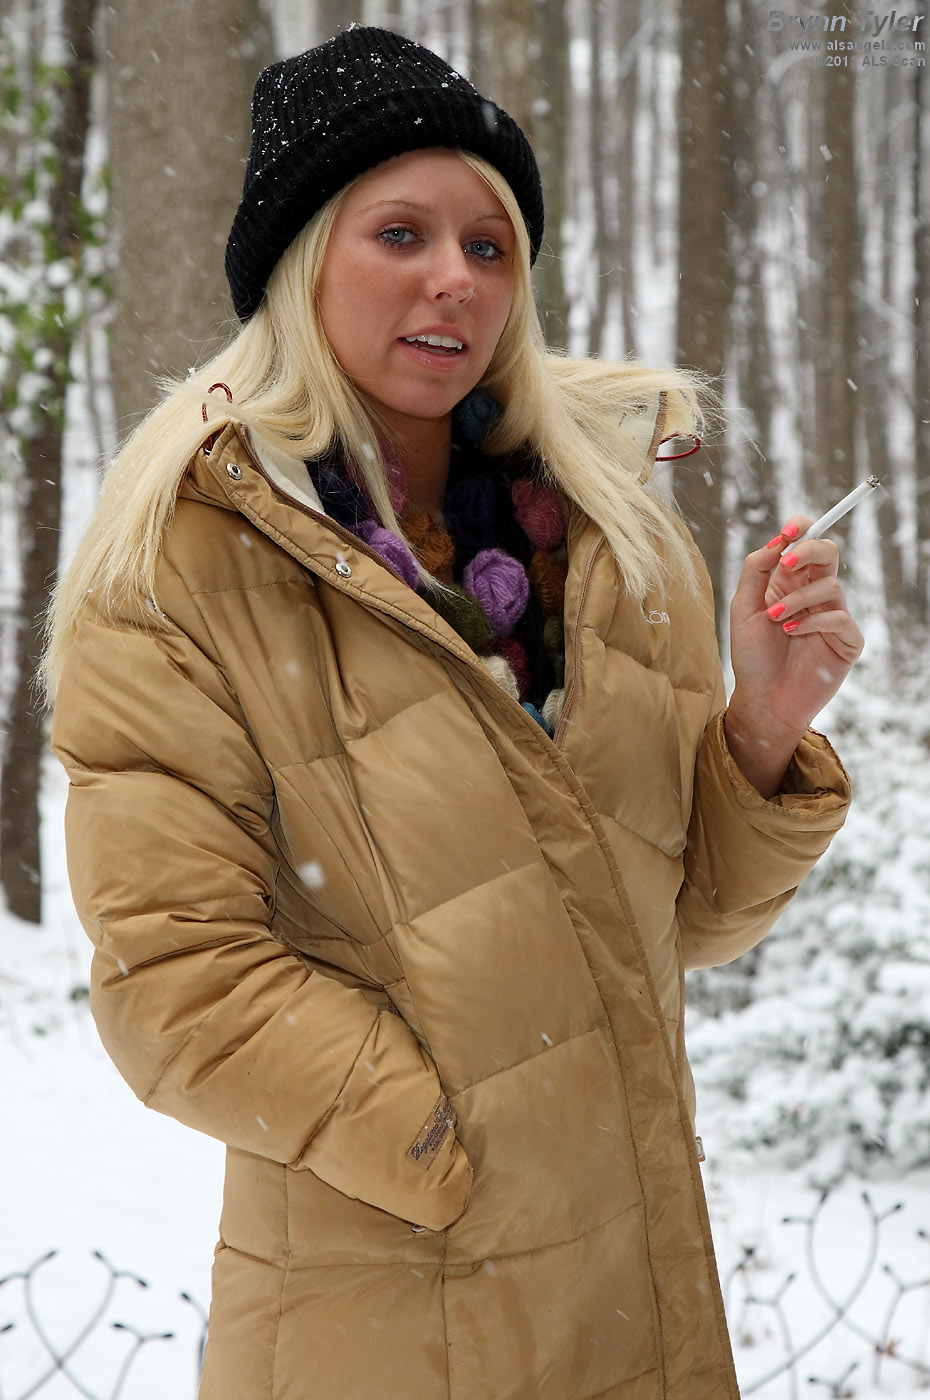 Brynn Tyler - Brynn Tyler Smoking and Toying with Beads in the Snow